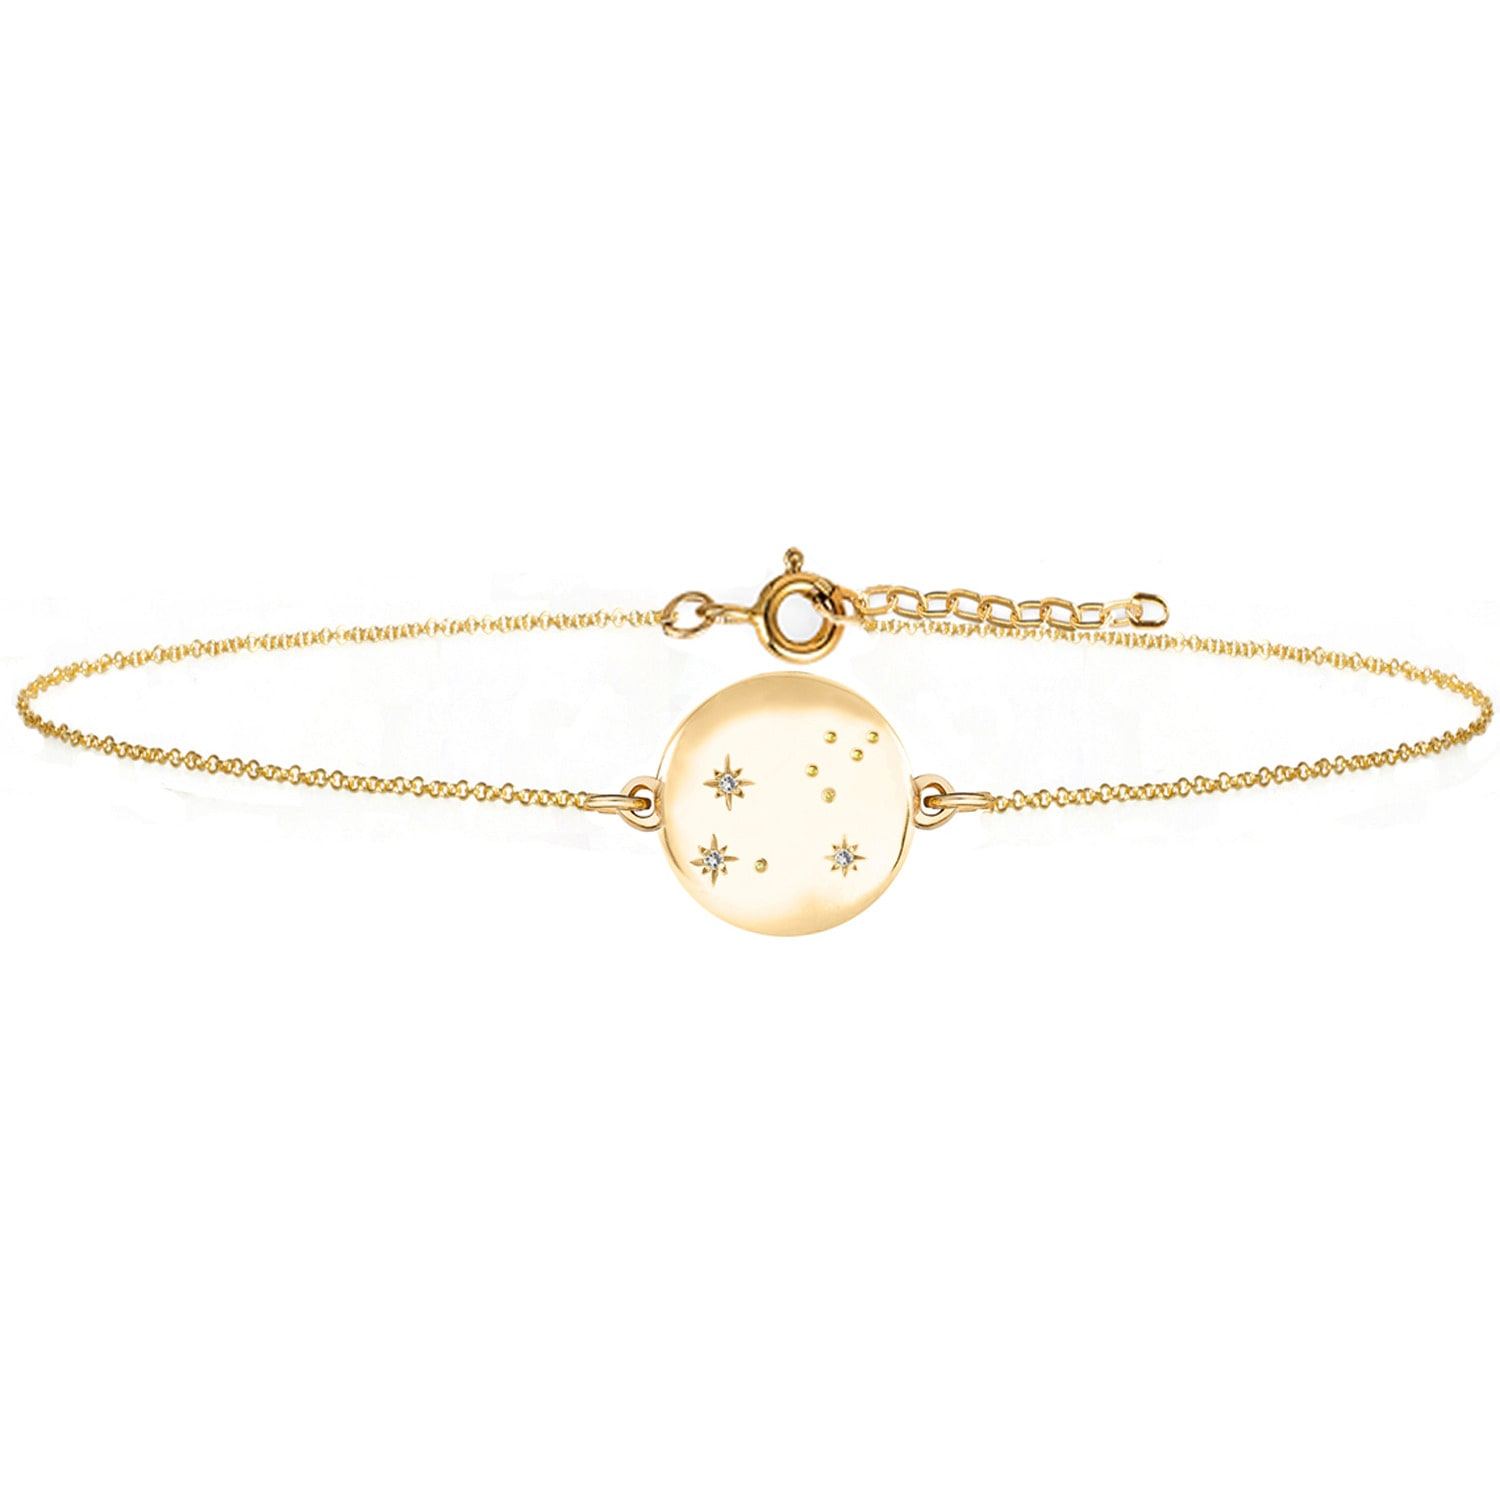 No 13 - Leo Zodiac Constellation Bracelet Yellow Gold & Diamonds